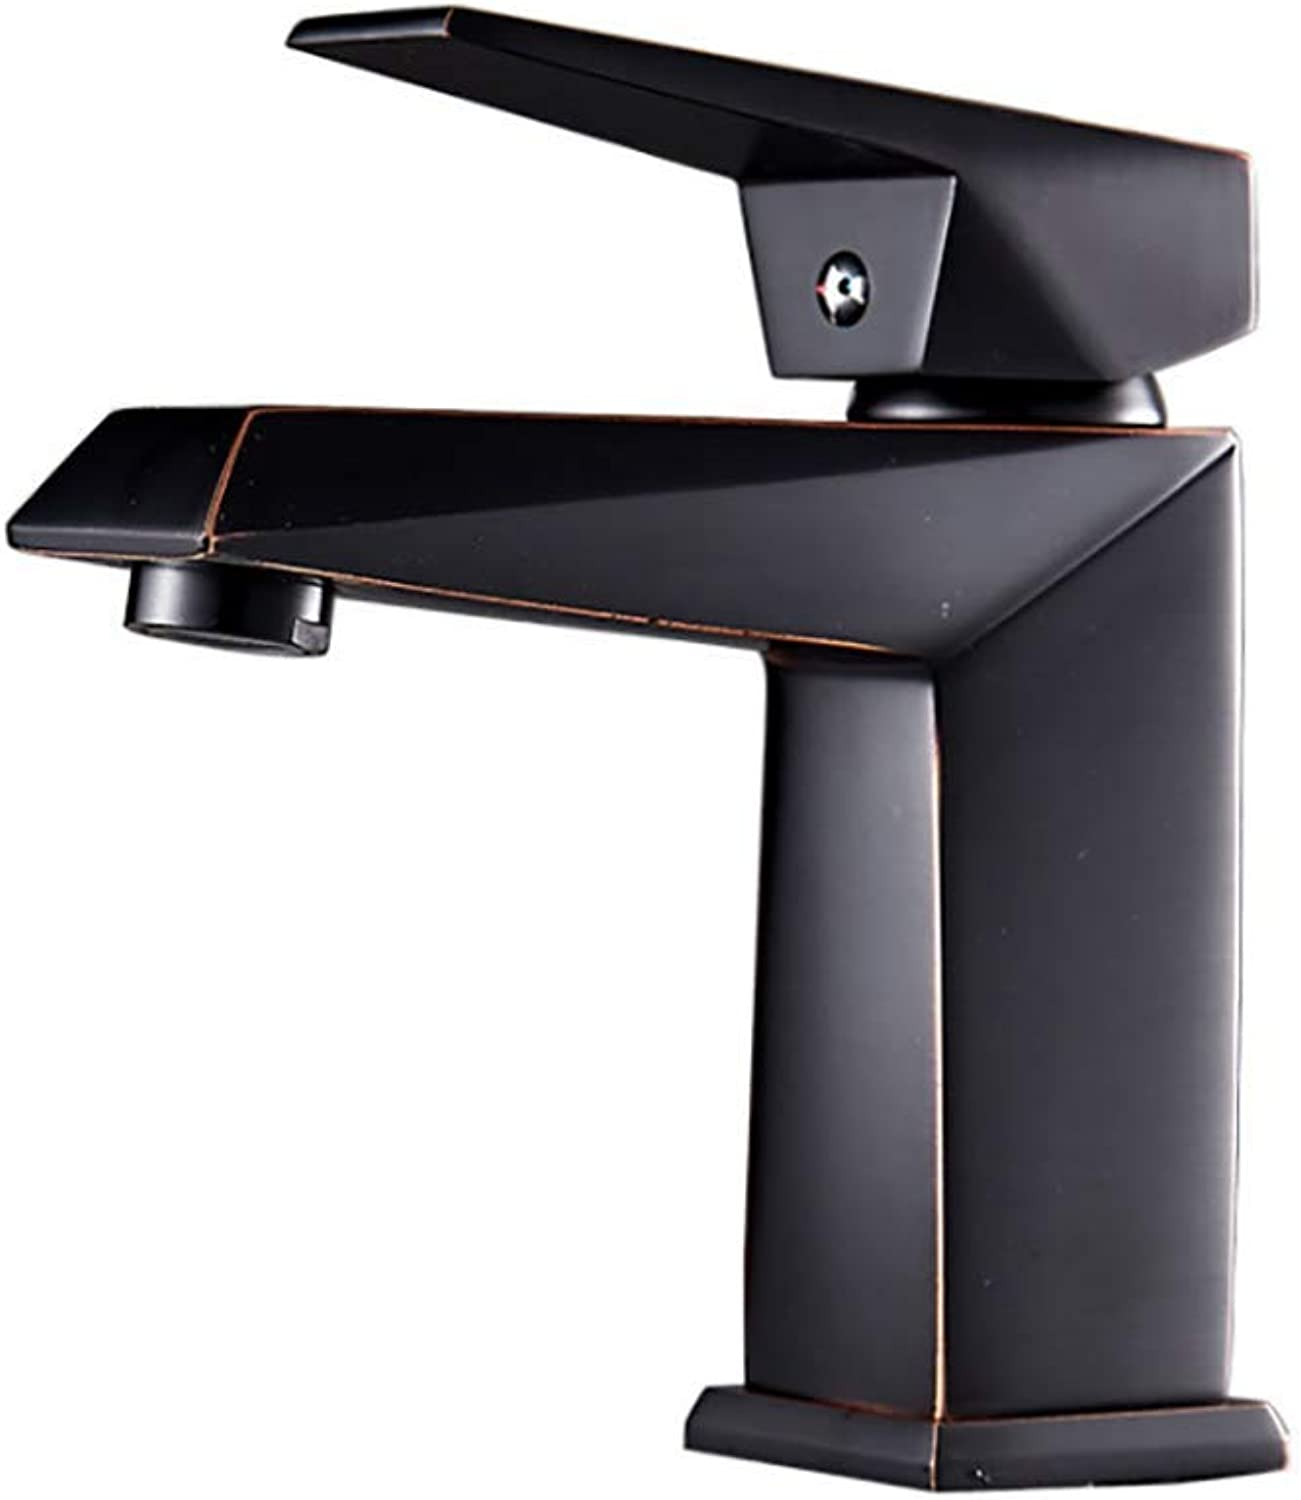 XIONGDA Black Ancient Bathroom Sink Faucet, All Copper Plated Hot and Cold Water Above Counter Basin Faucet Kitchen Sink Taps